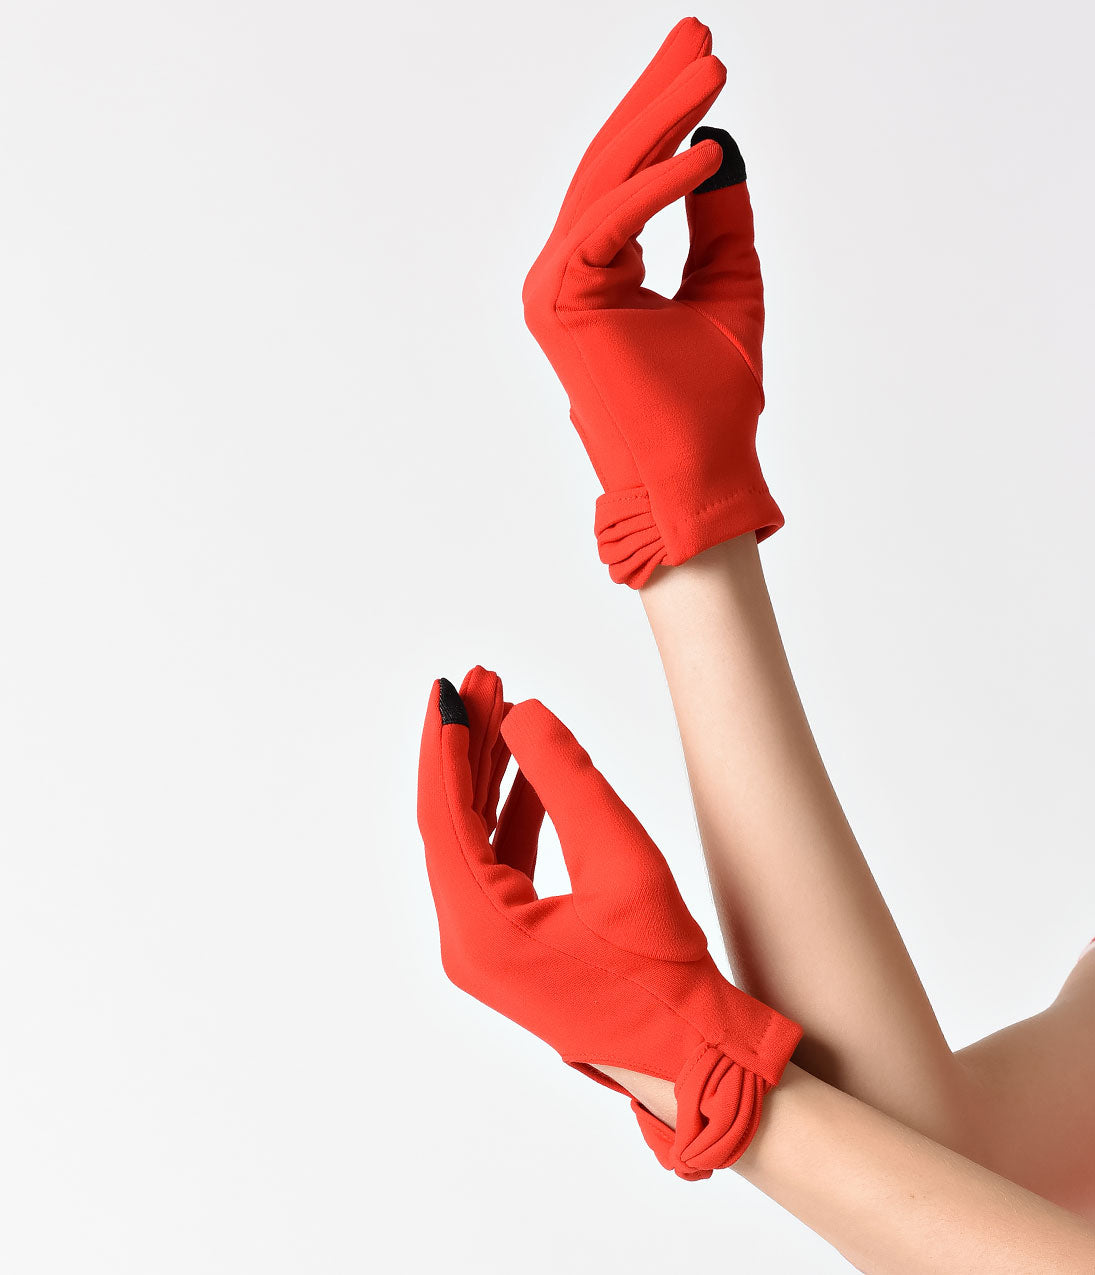 Vintage Gloves – Styles from 1900 to 1960s Unique Vintage Red Wrist Length Bow Keyhole Gloves $18.00 AT vintagedancer.com